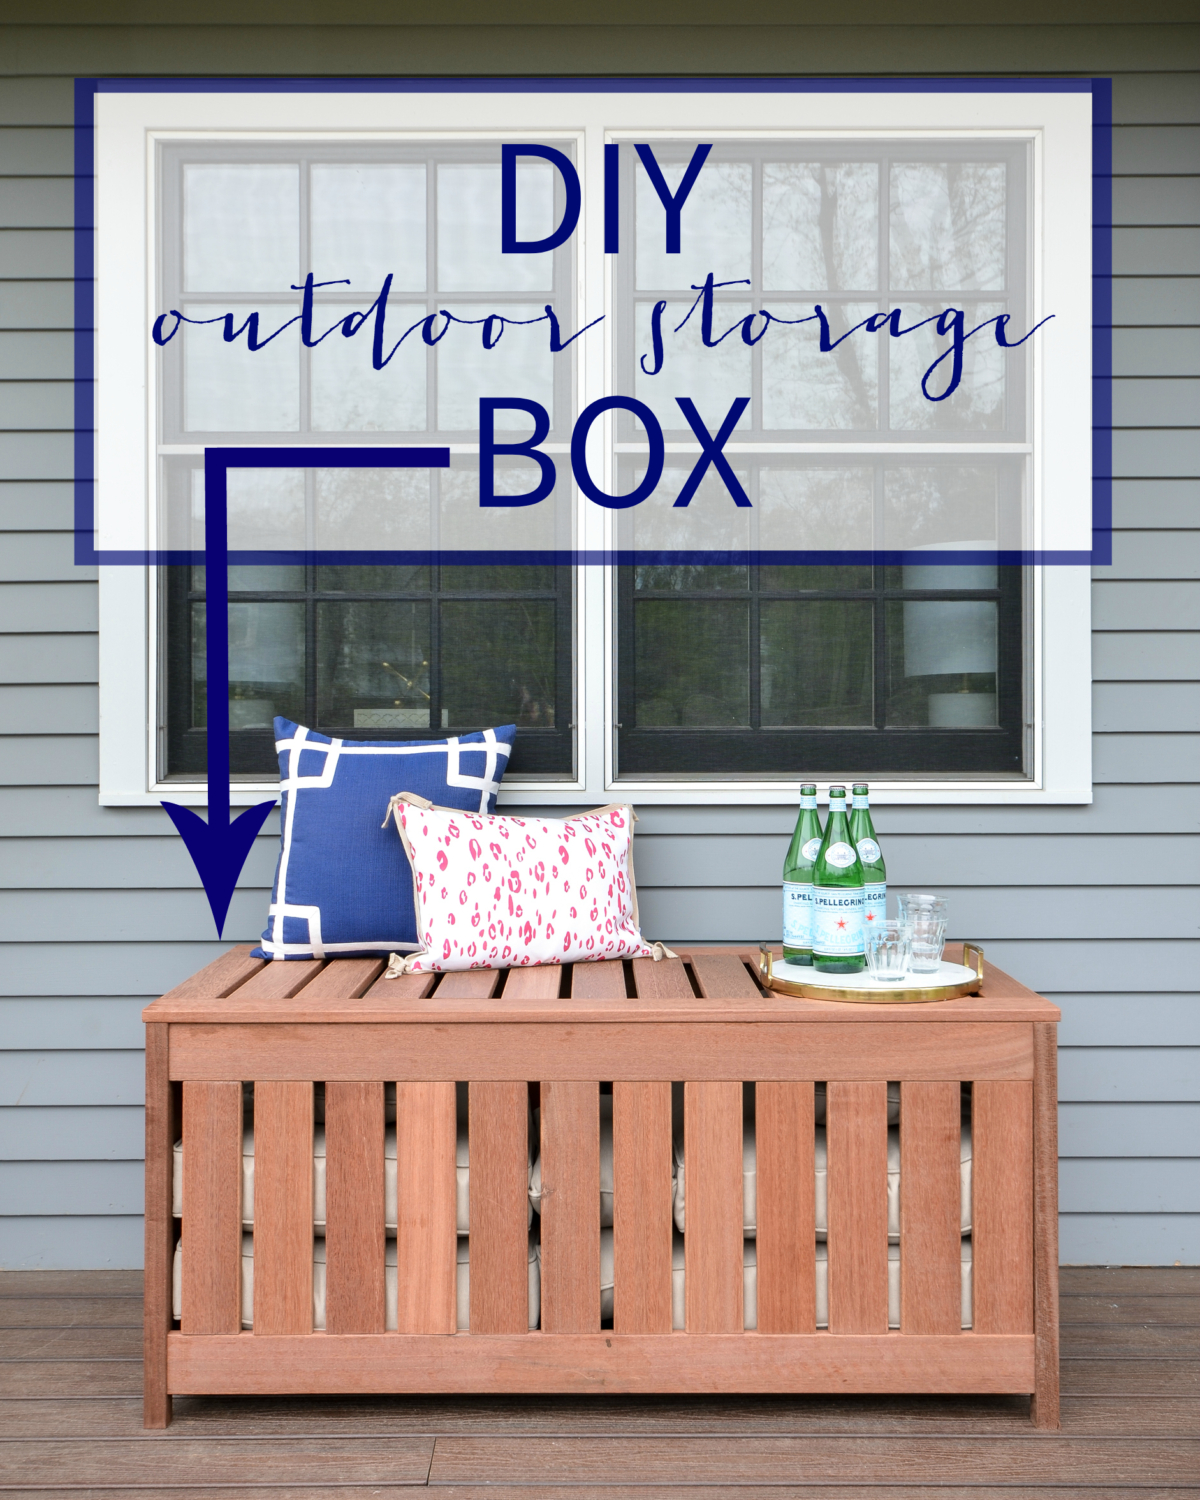 FREE plans for making a DIY outdoor storage box for outdoor cushions! Plus, it doubles as an outdoor bench seat and serving surface.